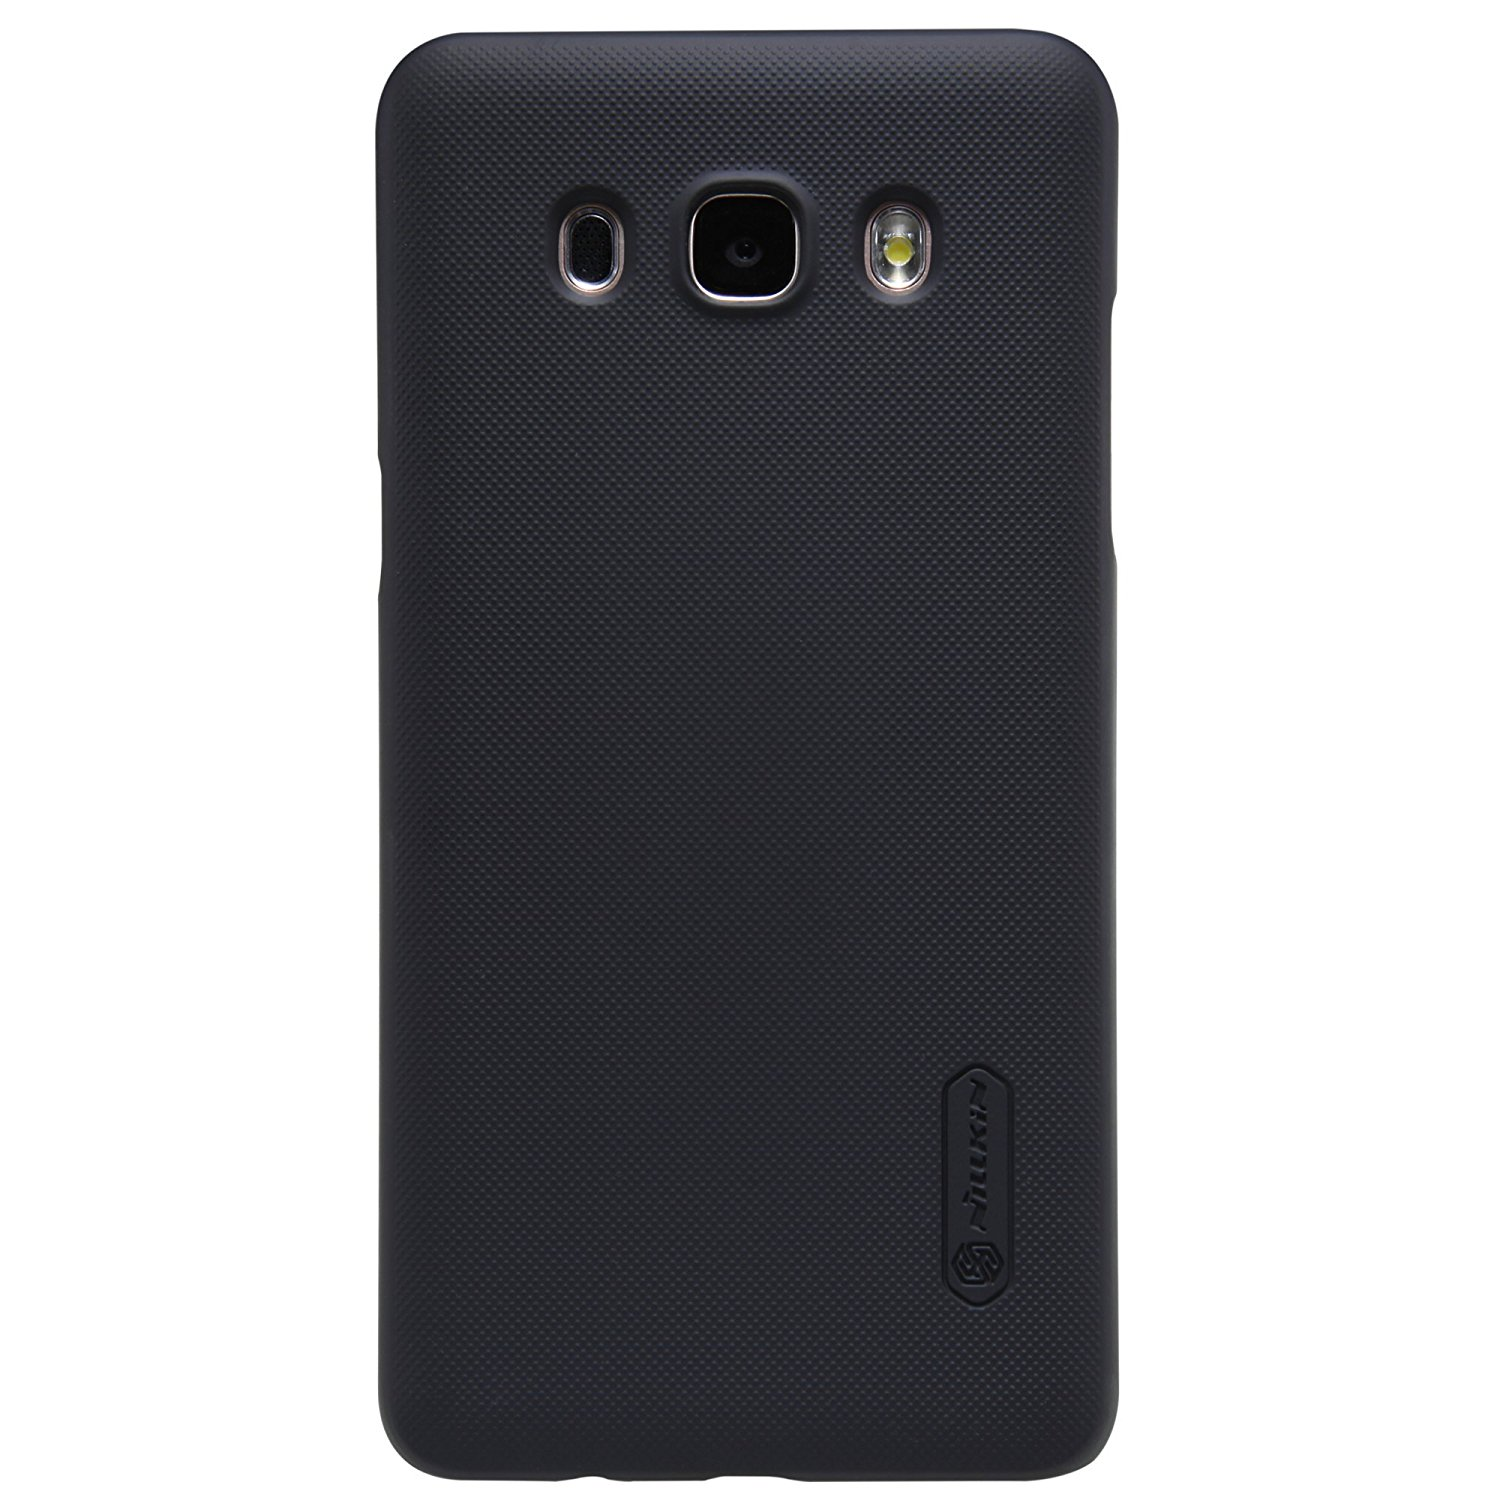 Nillkin Frosted Hard Case Samsung Galaxy J5 2016 Casing Cover - Hitam